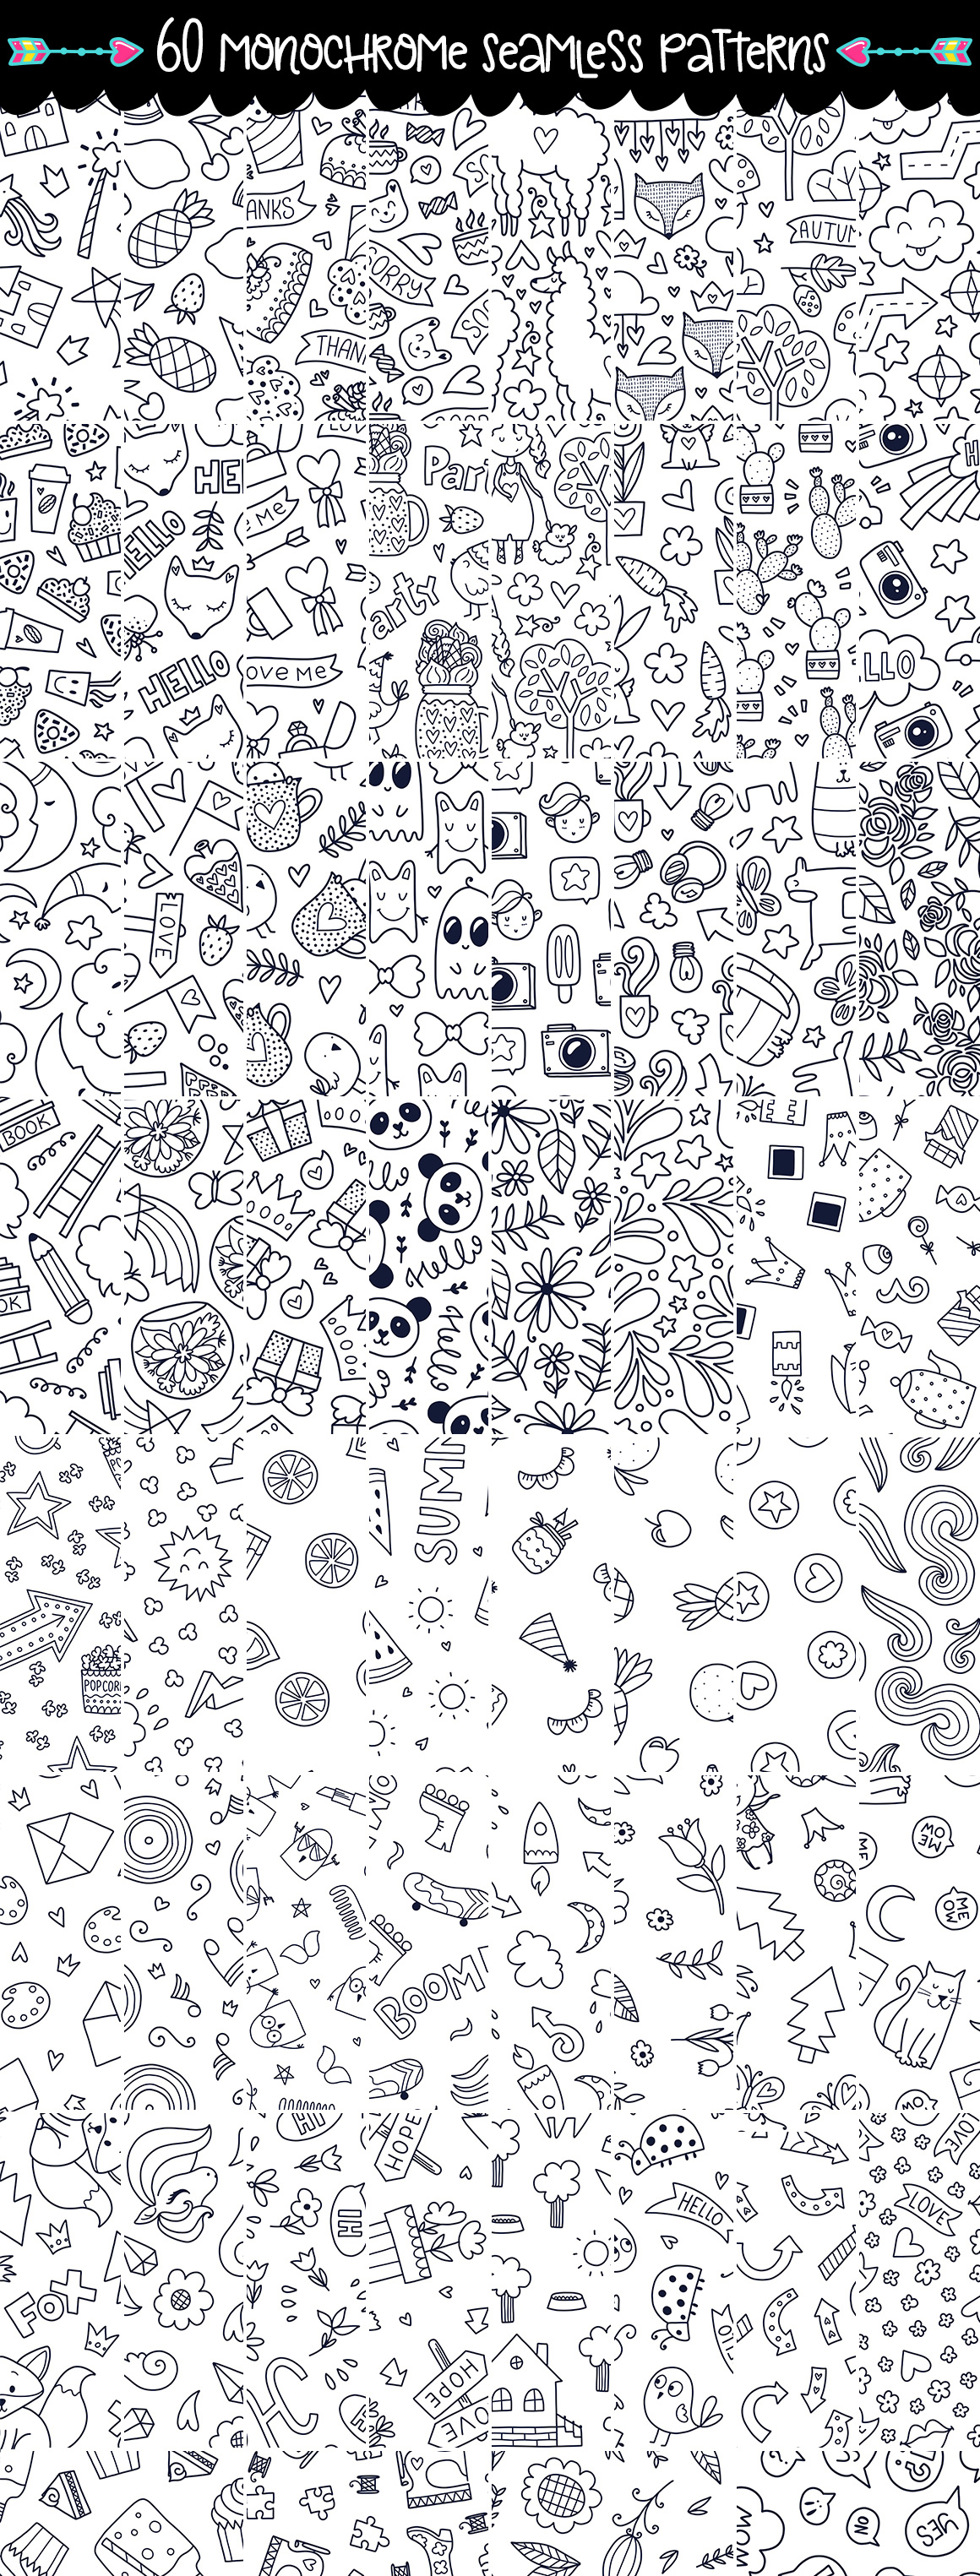 645 Doodles and Patterns - Clipart Set